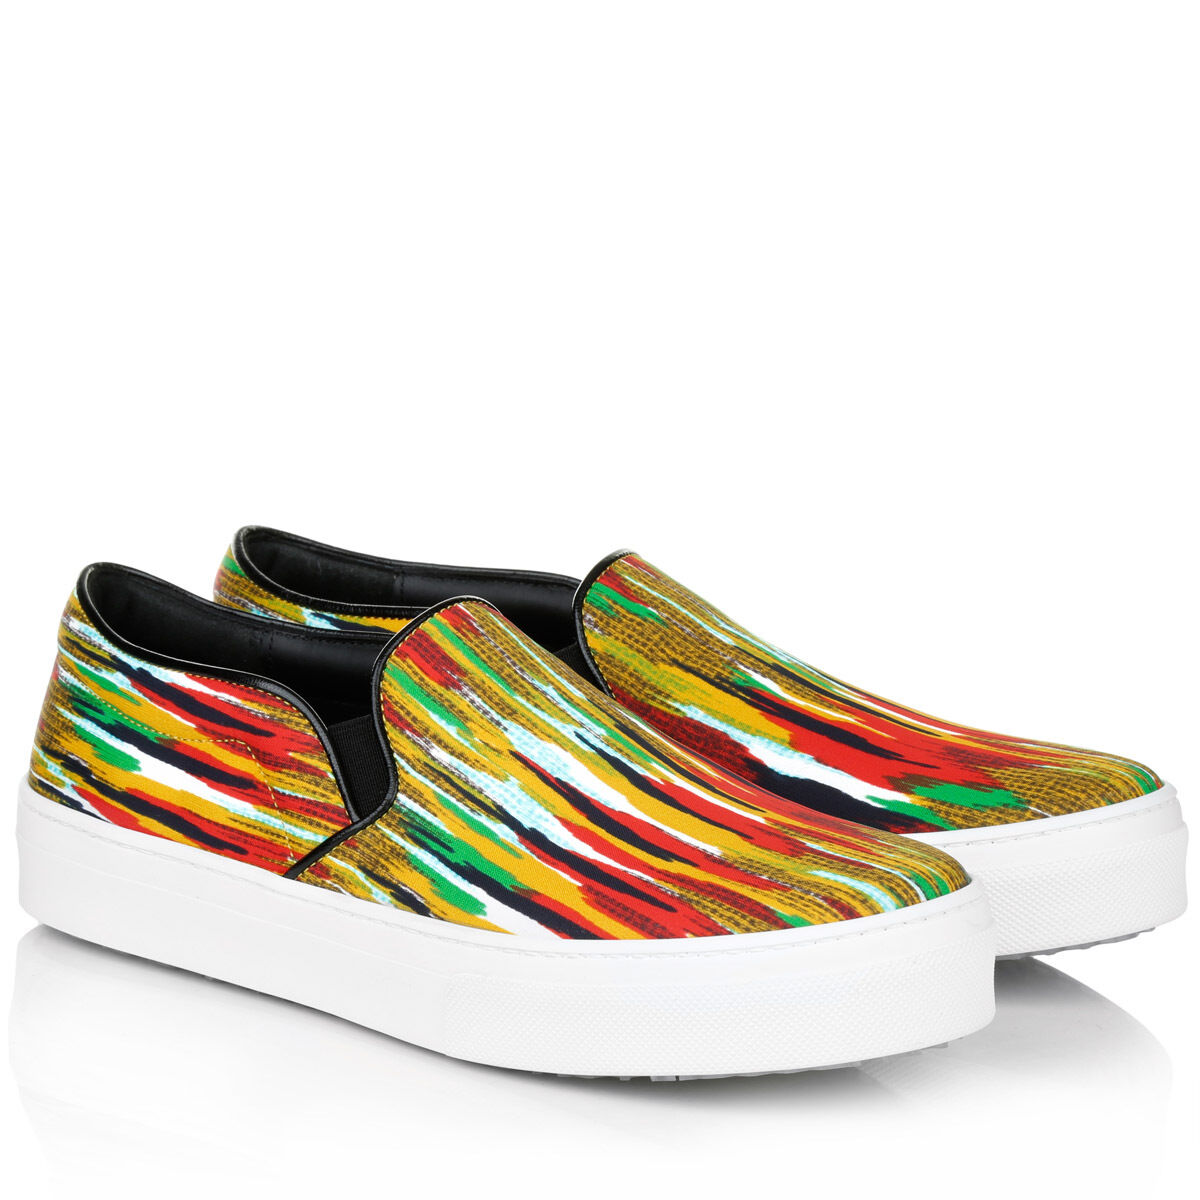 Celine Paris 8173 Striped Slip On Sneakers with Leather Details sz 41